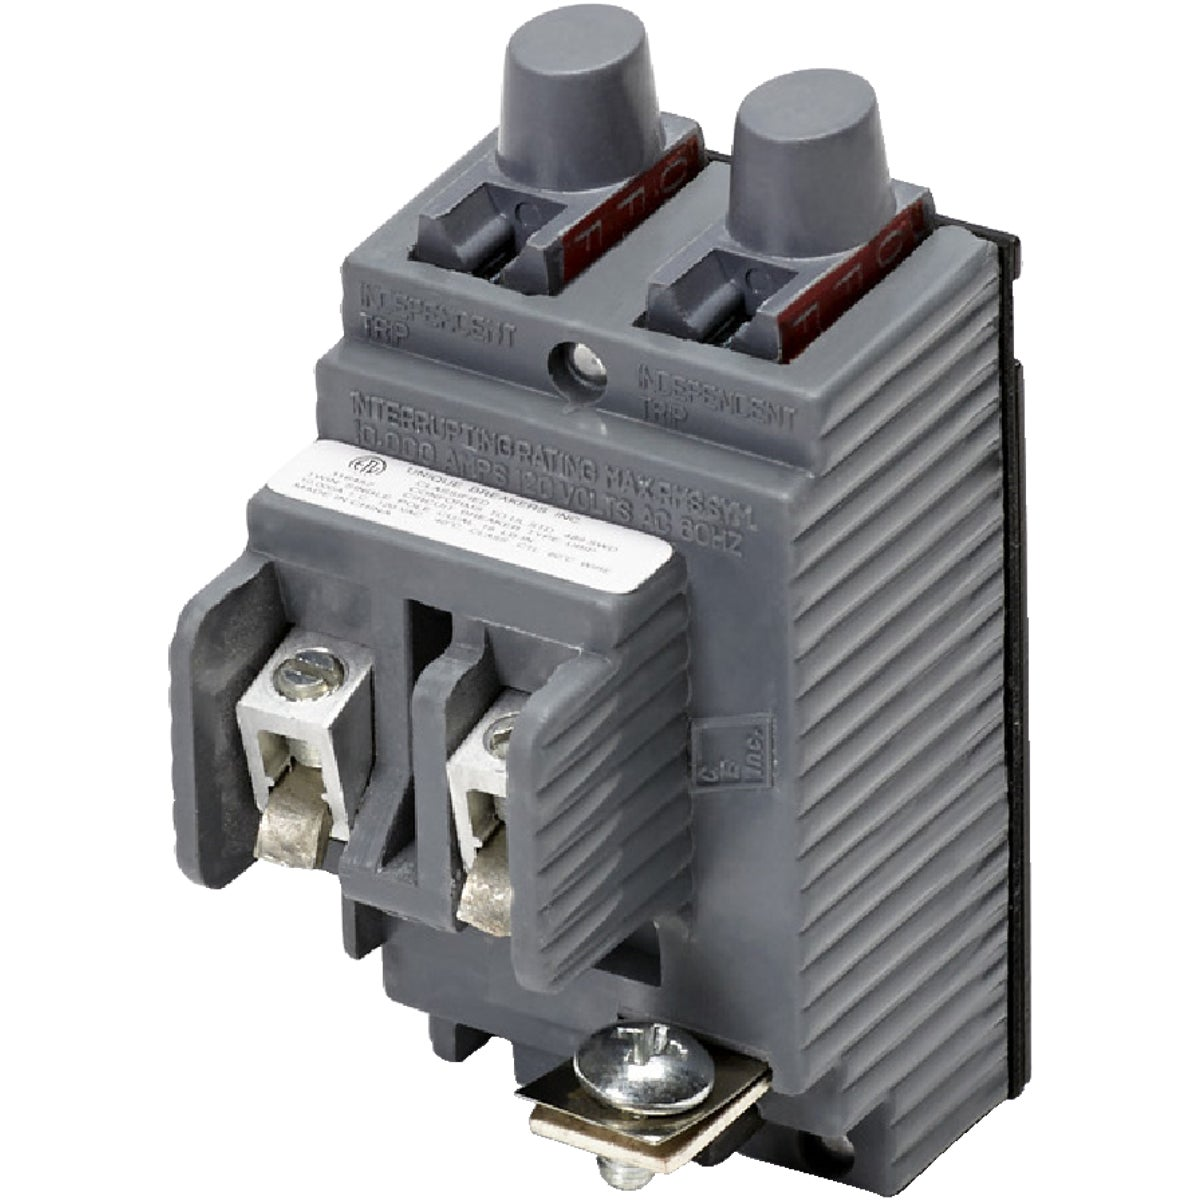 20A TWIN CIRCUIT BREAKER - UBIP2020 by Connecticut Electric